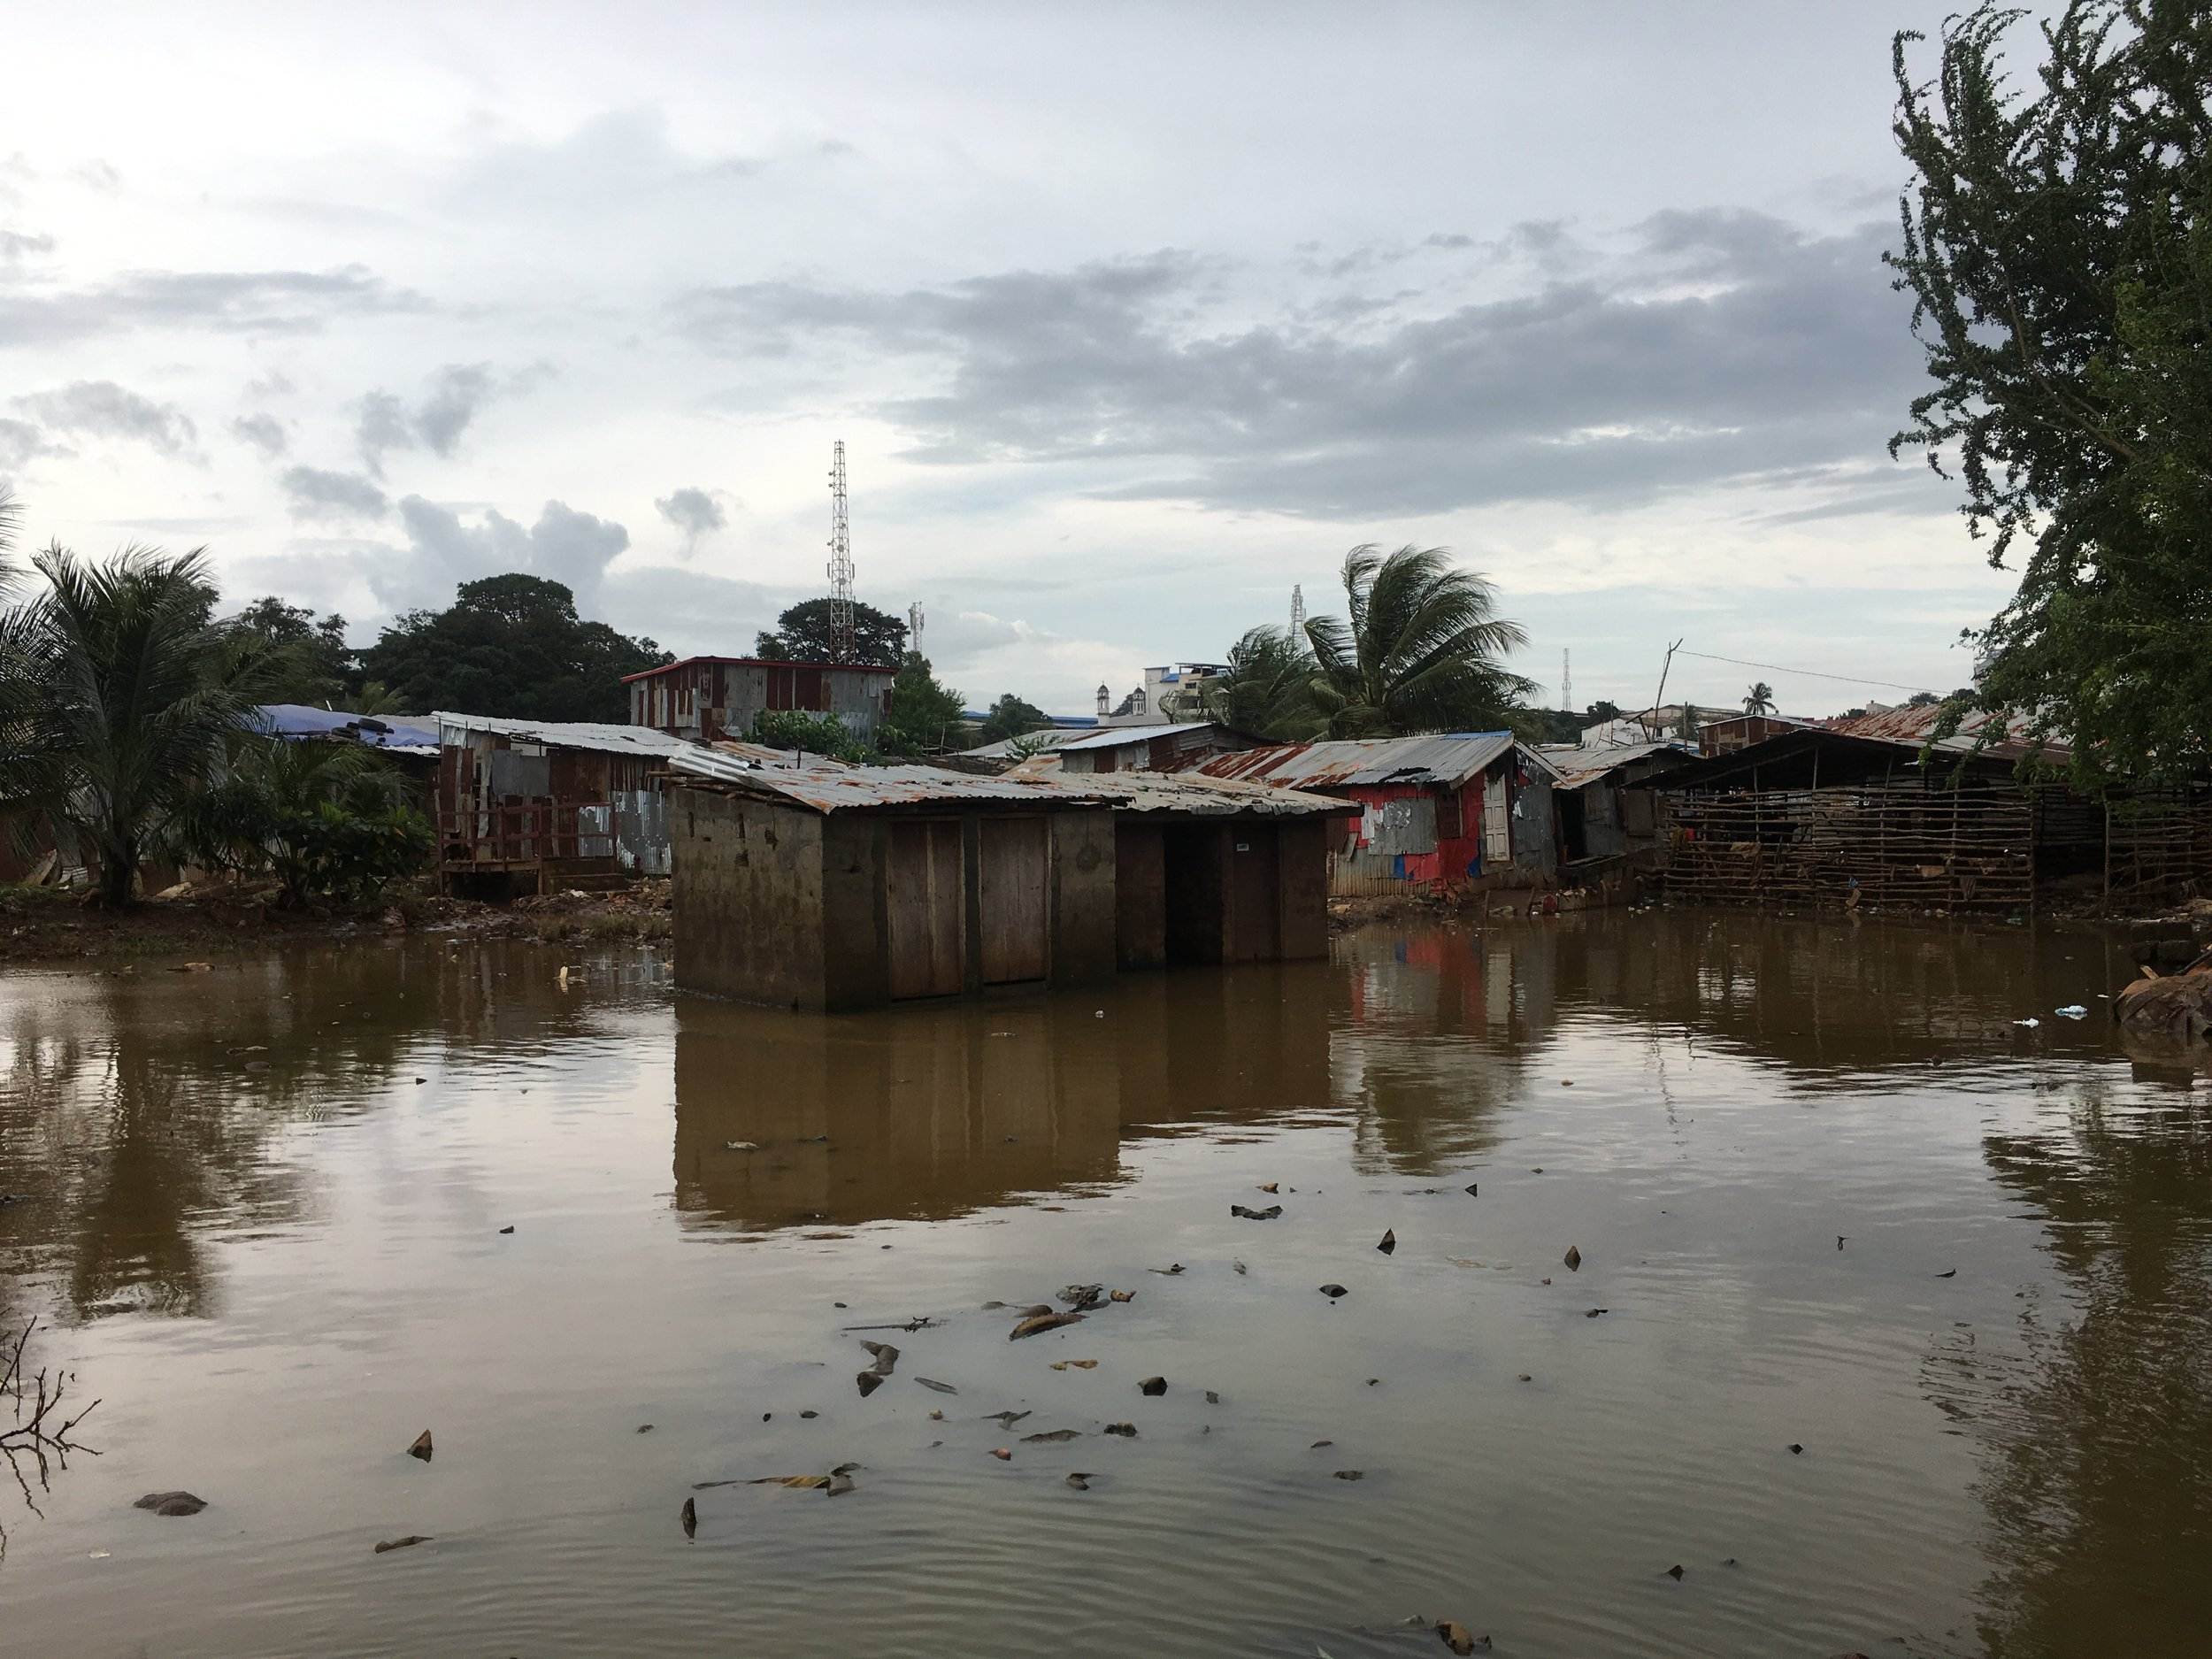 At its peak, the water level rose to 1.5 meters in Culvert community.